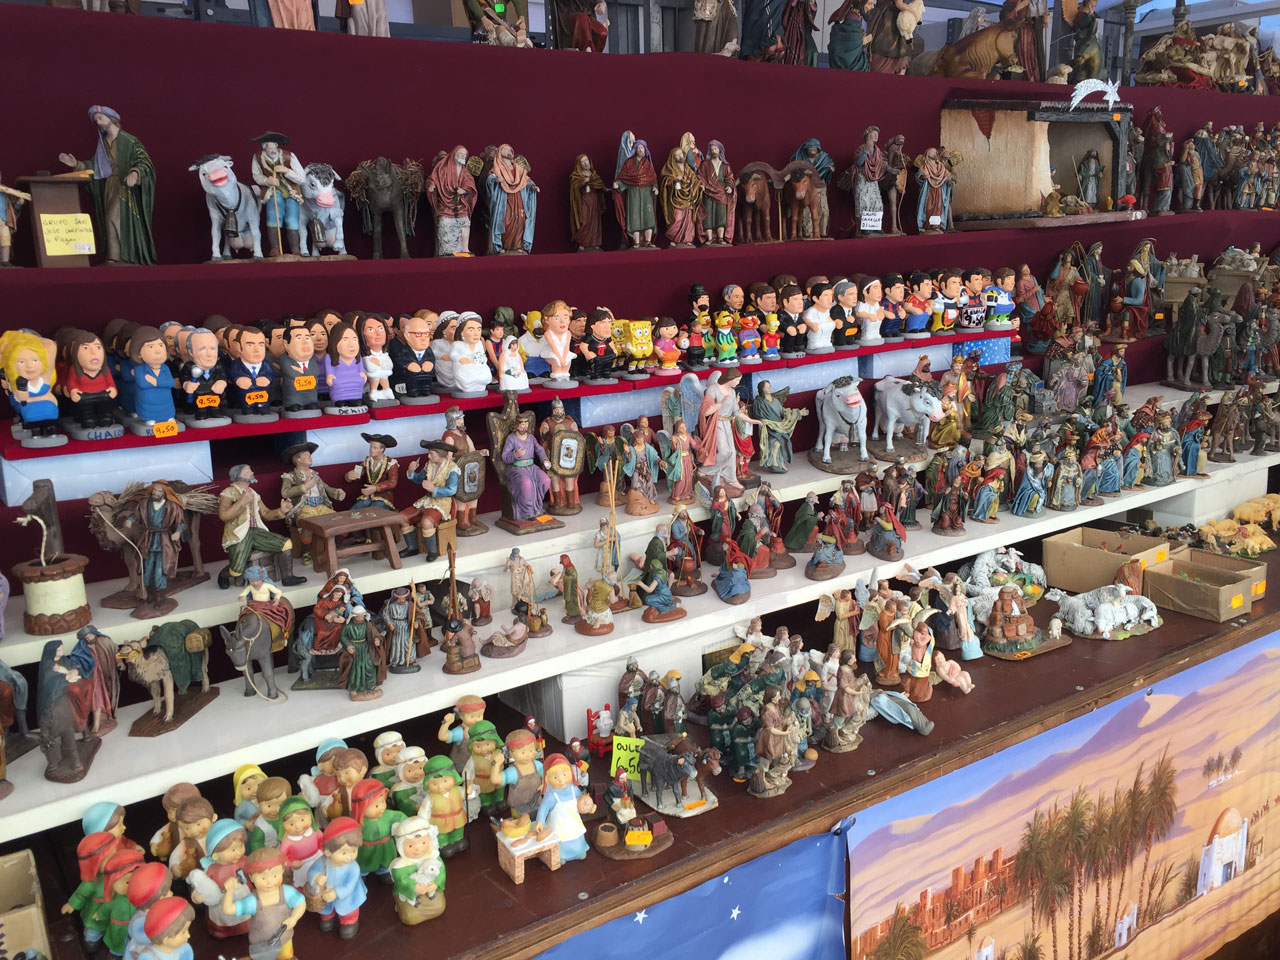 Caganers for sale at the Christmas market, Palma de Mallorca